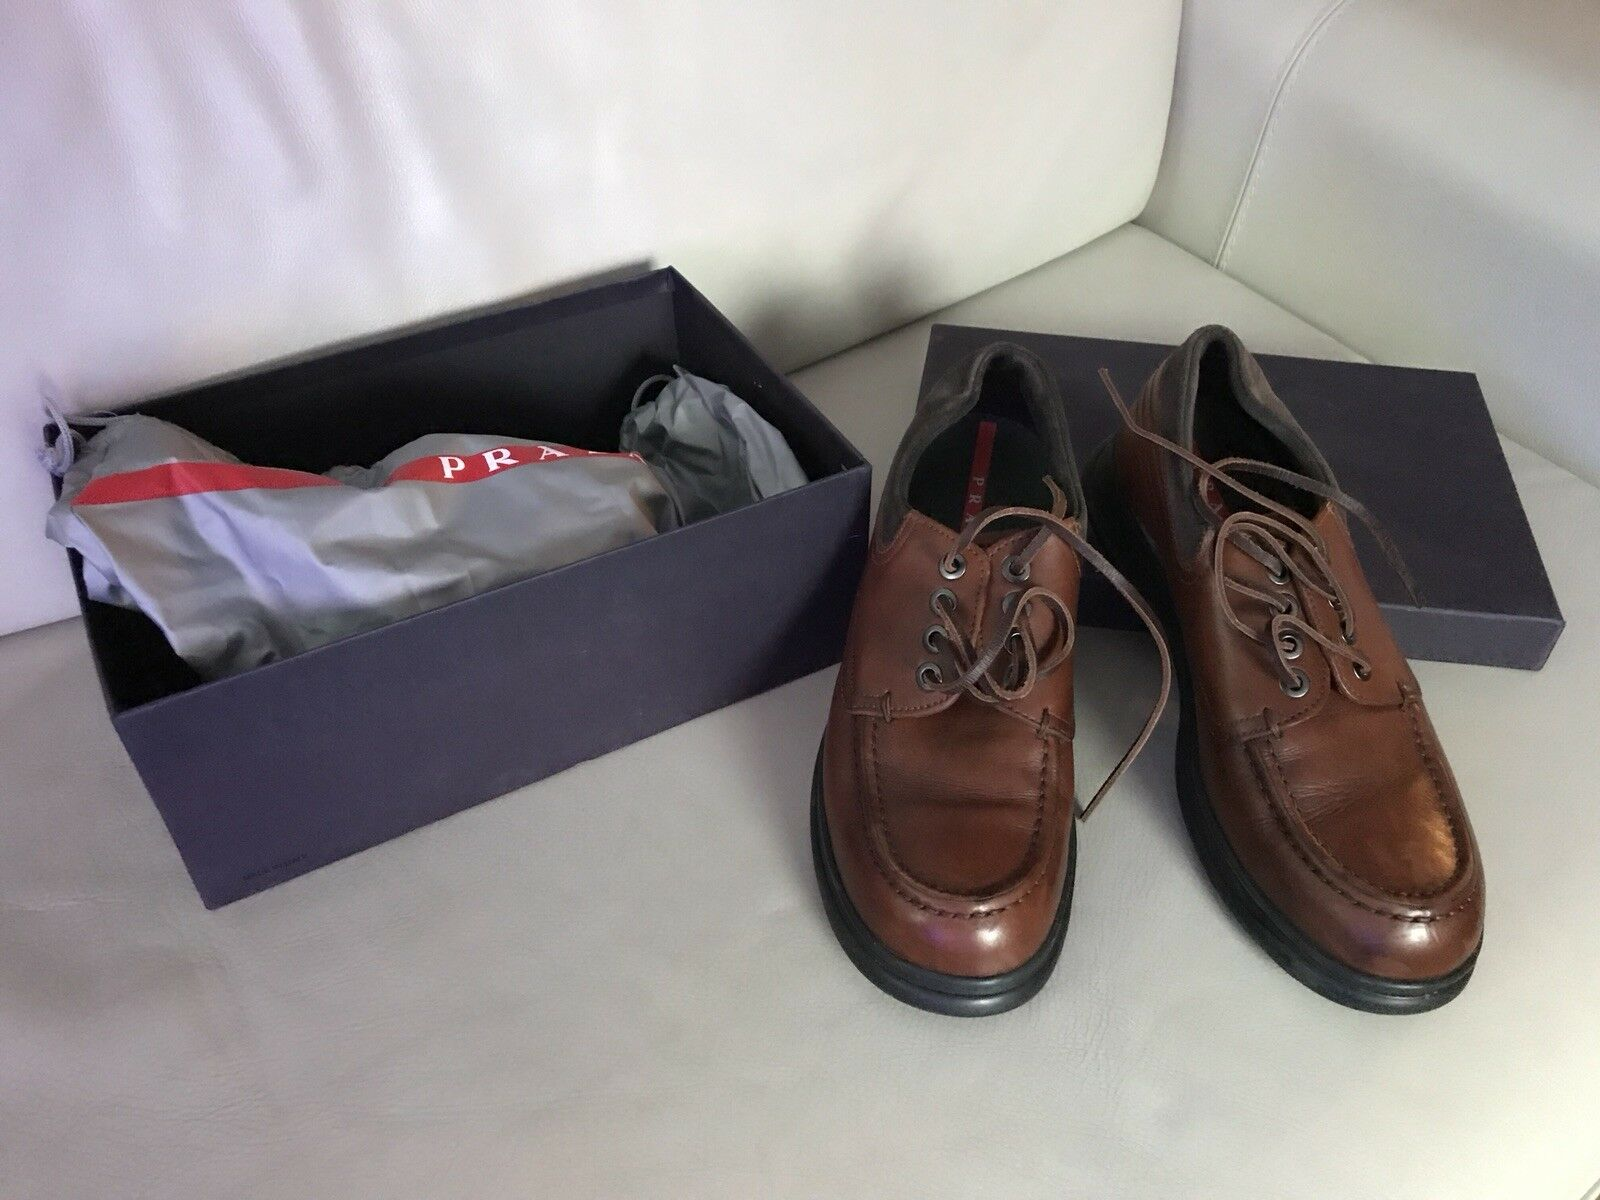 Prada mens shoes size 6